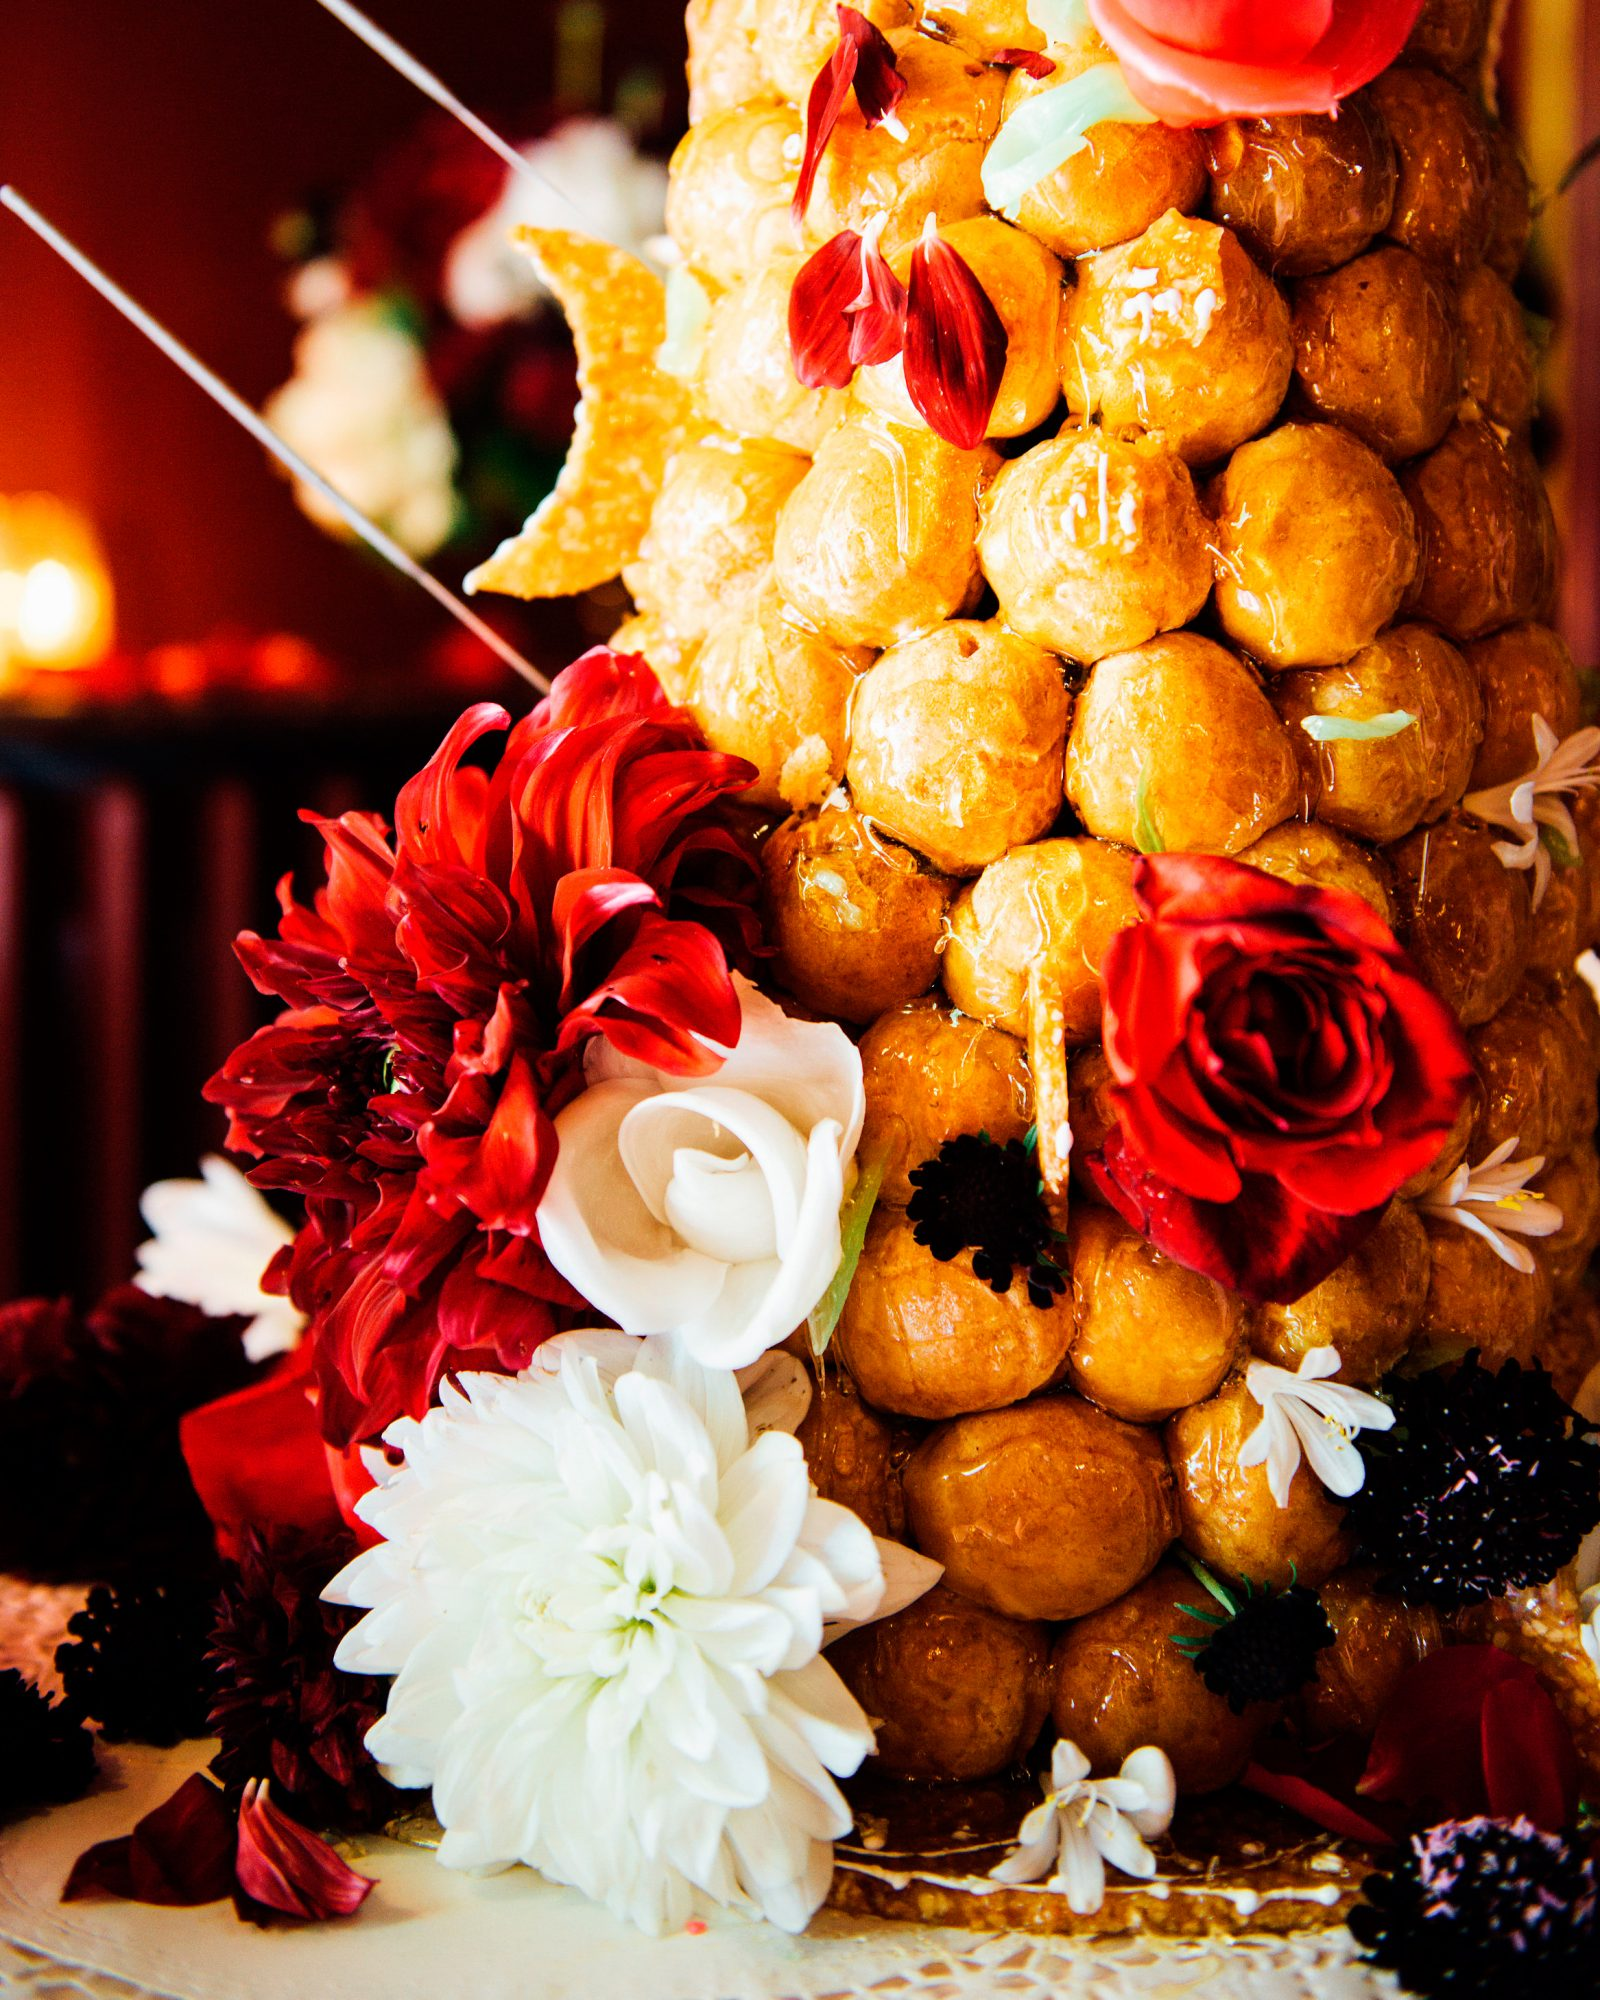 The Croquembouche